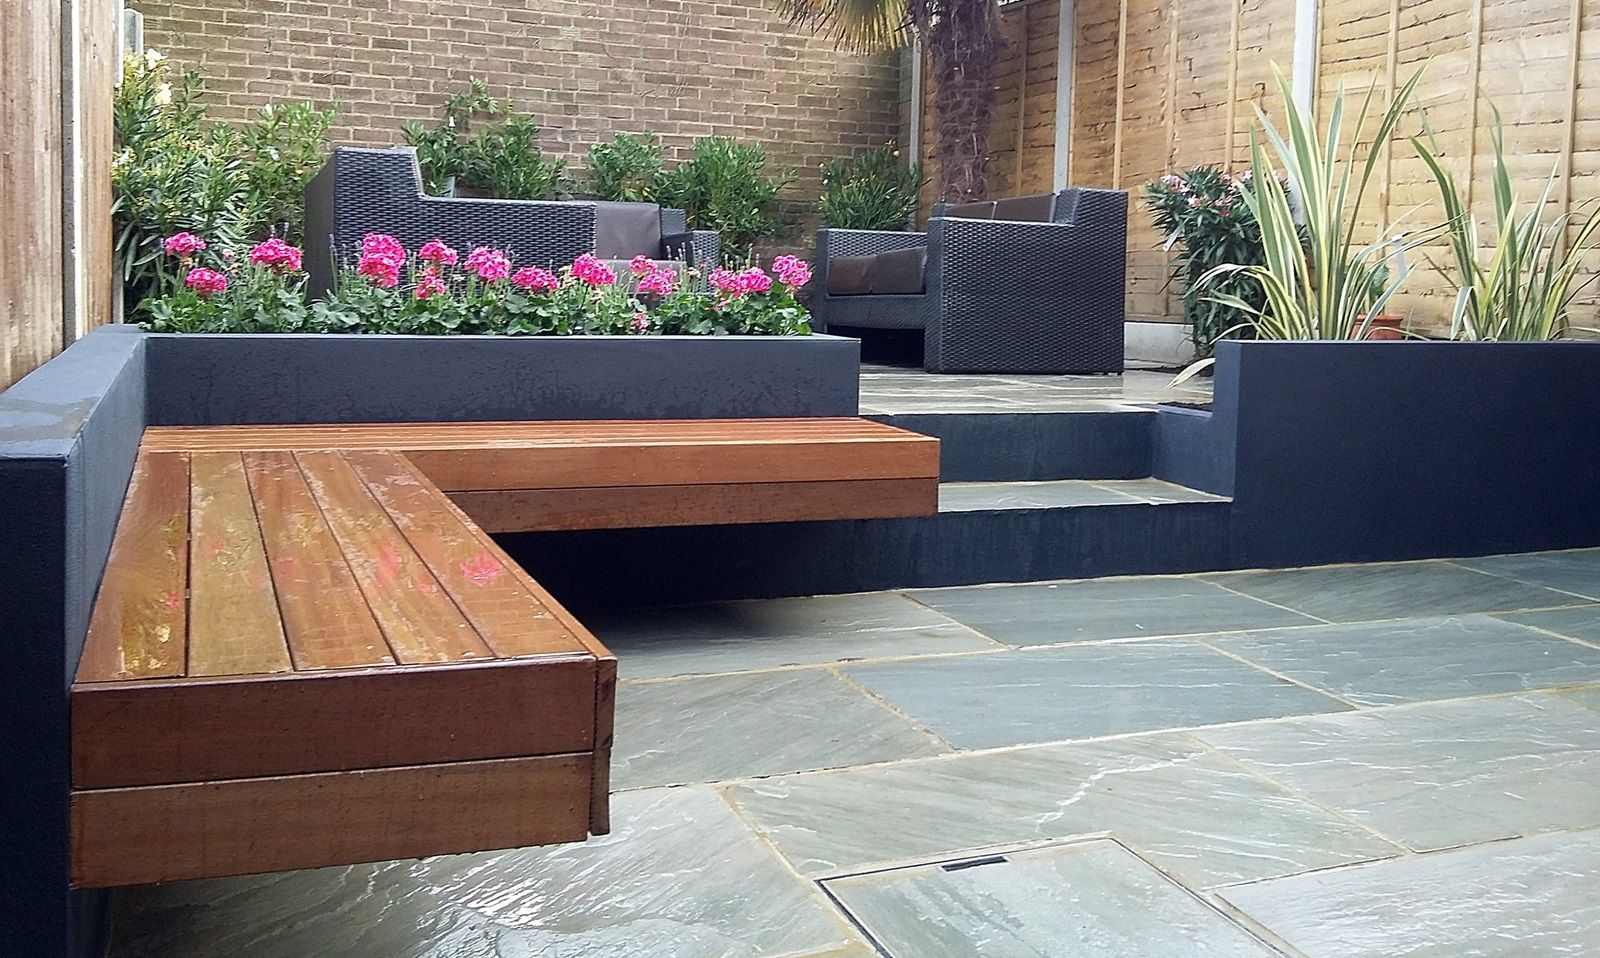 Garden Ideas 2015 Uk http://rhsblog.co.uk/wp-content/uploads/2015/06/modern-grey-garden